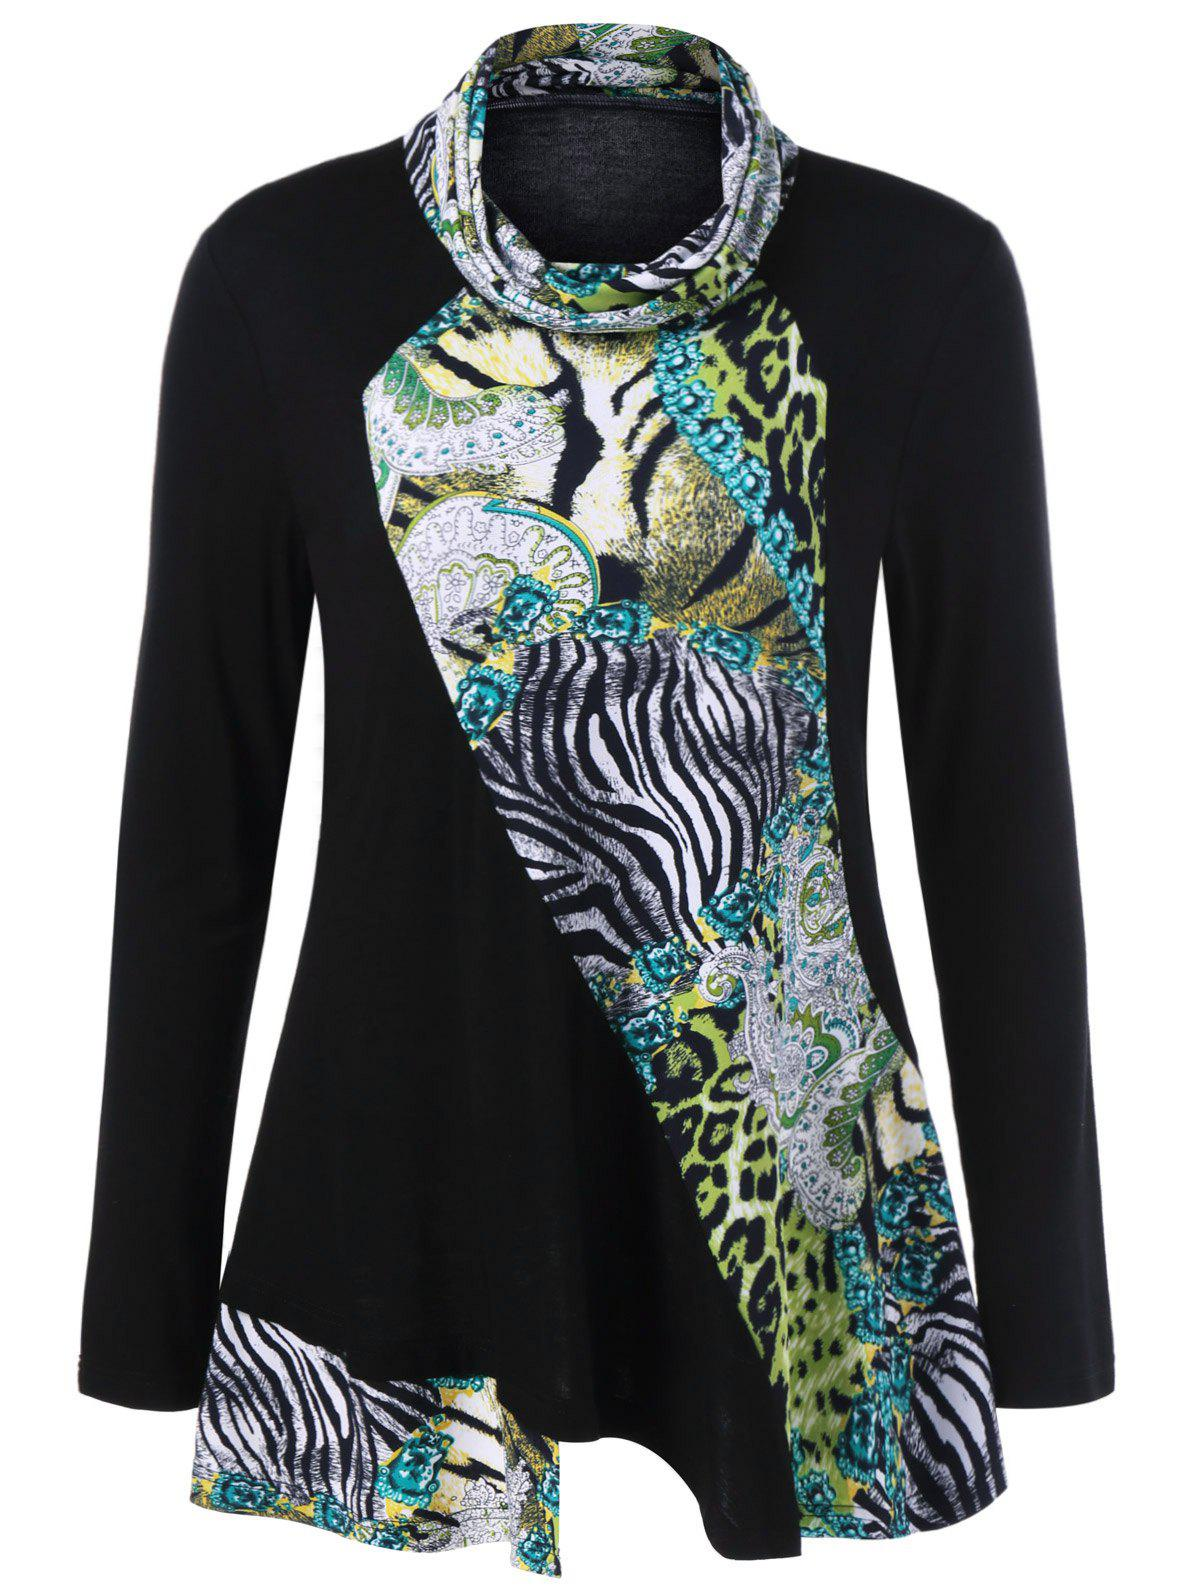 Animal Print Tunic T-Shirt - COLORMIX XL